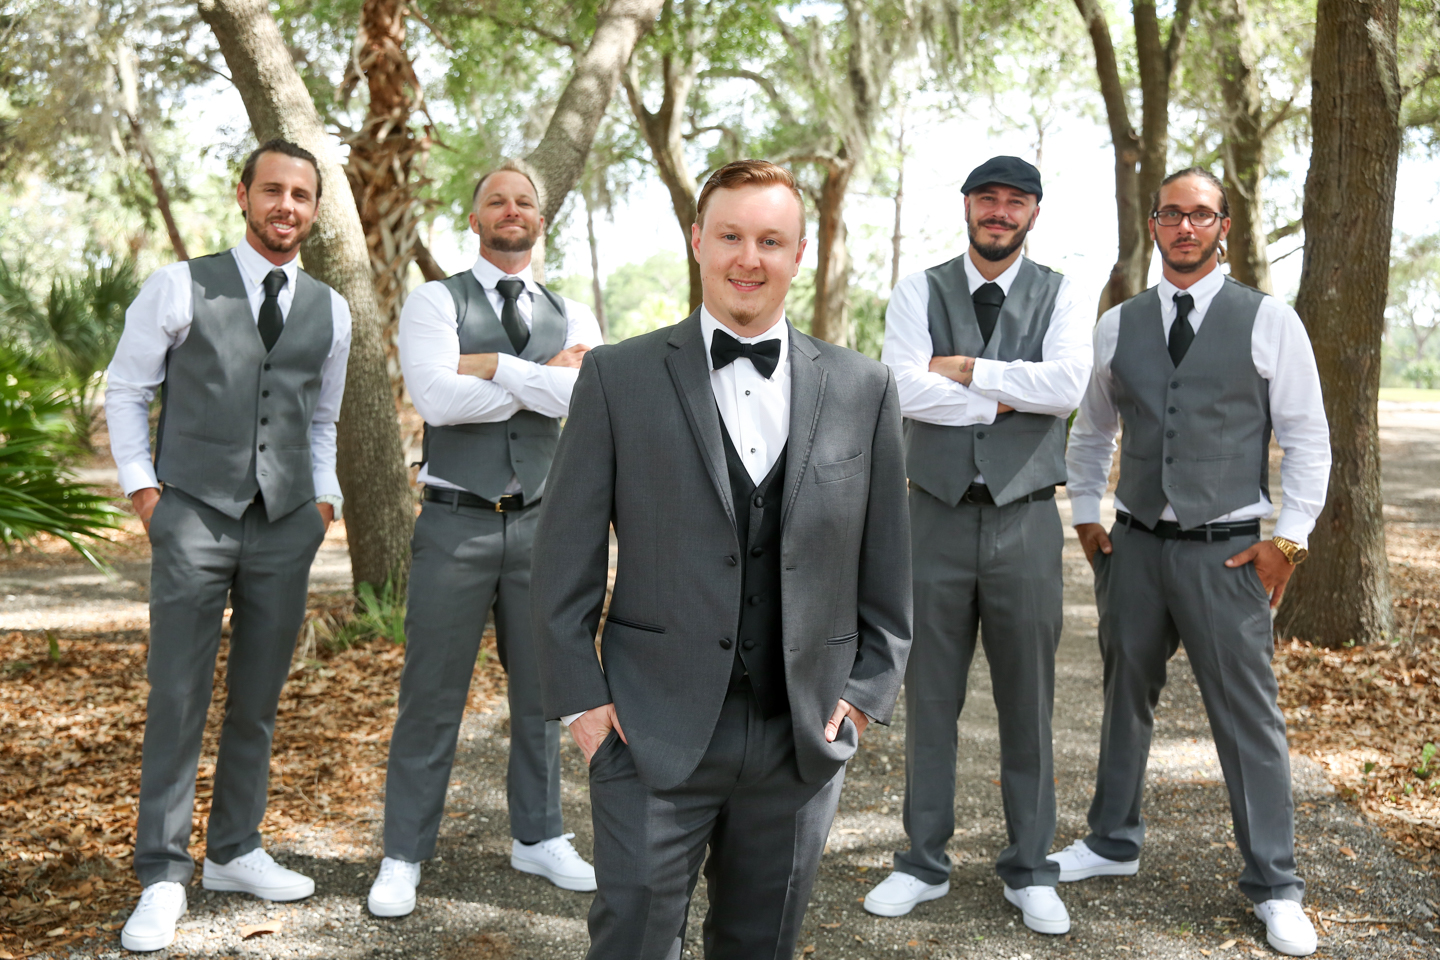 www.livehappystudio.com-wedding-photographer-orlando-fun-candid-portrait-men-groomsmen-dapper-style-24.jpg